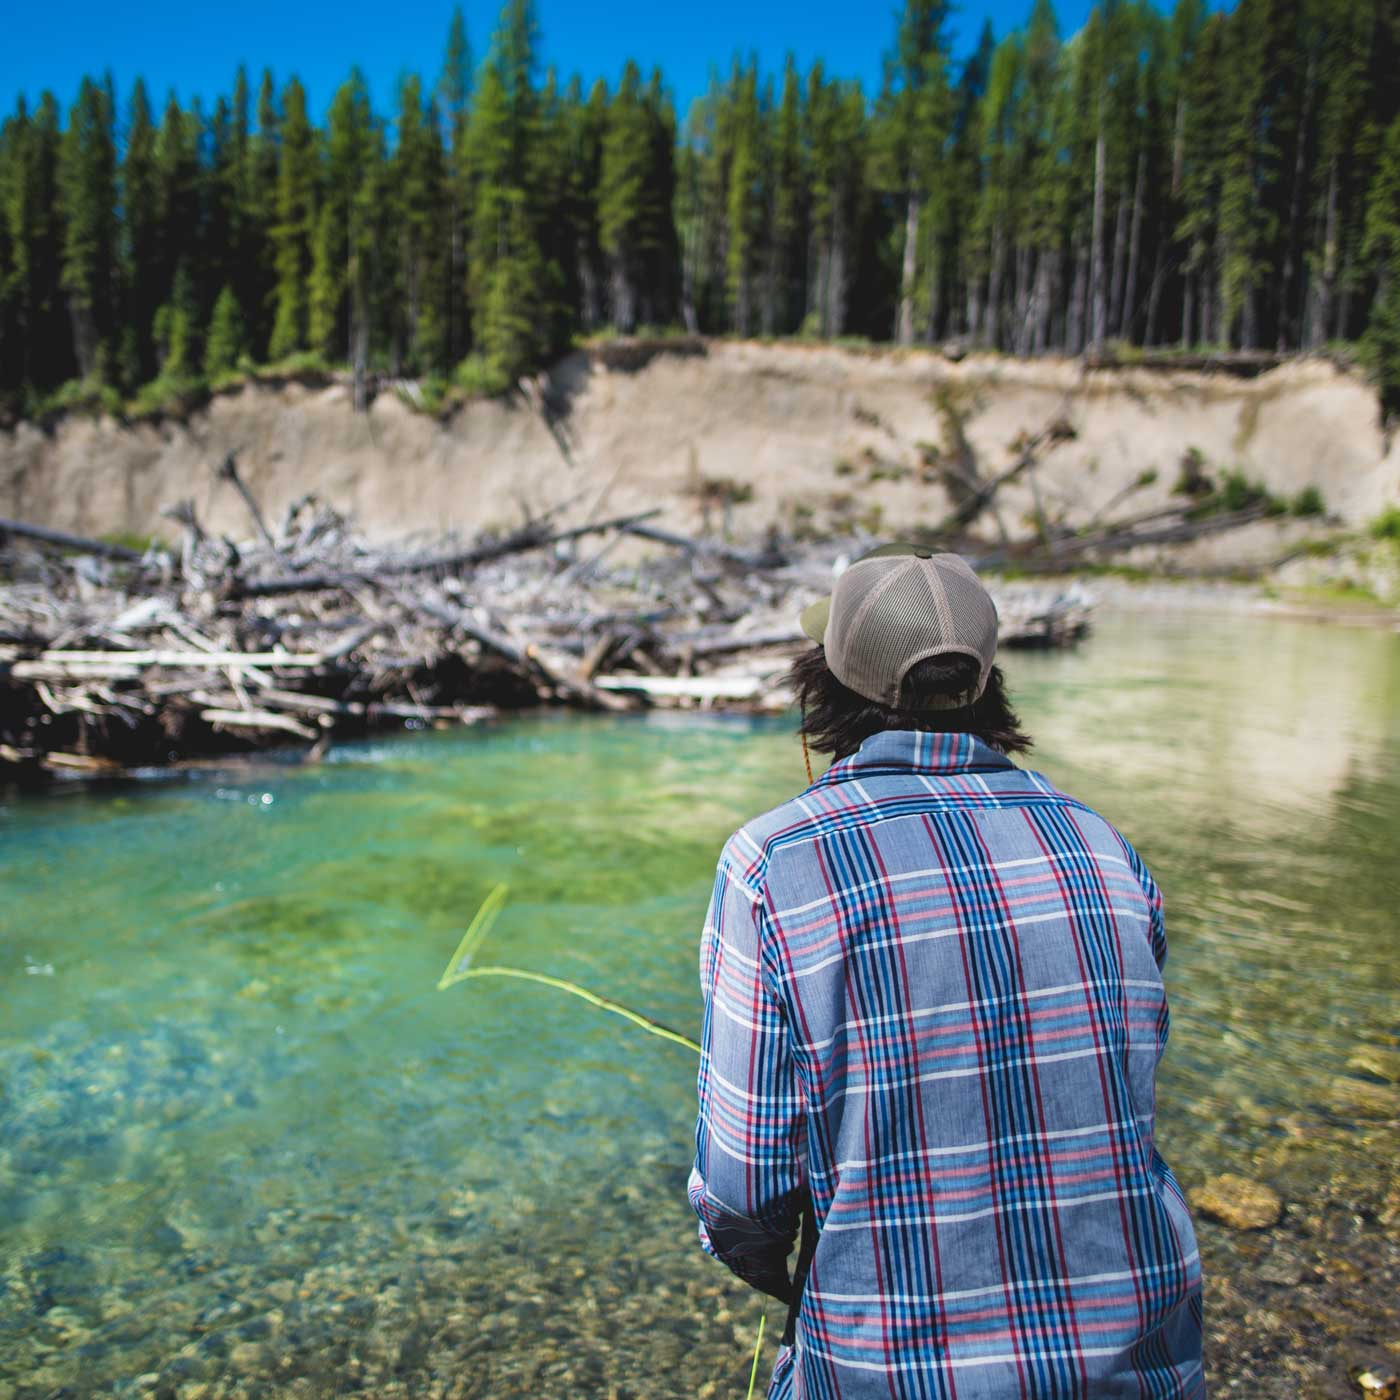 Fly Fishing the Flathead River in British Columbia, Canada